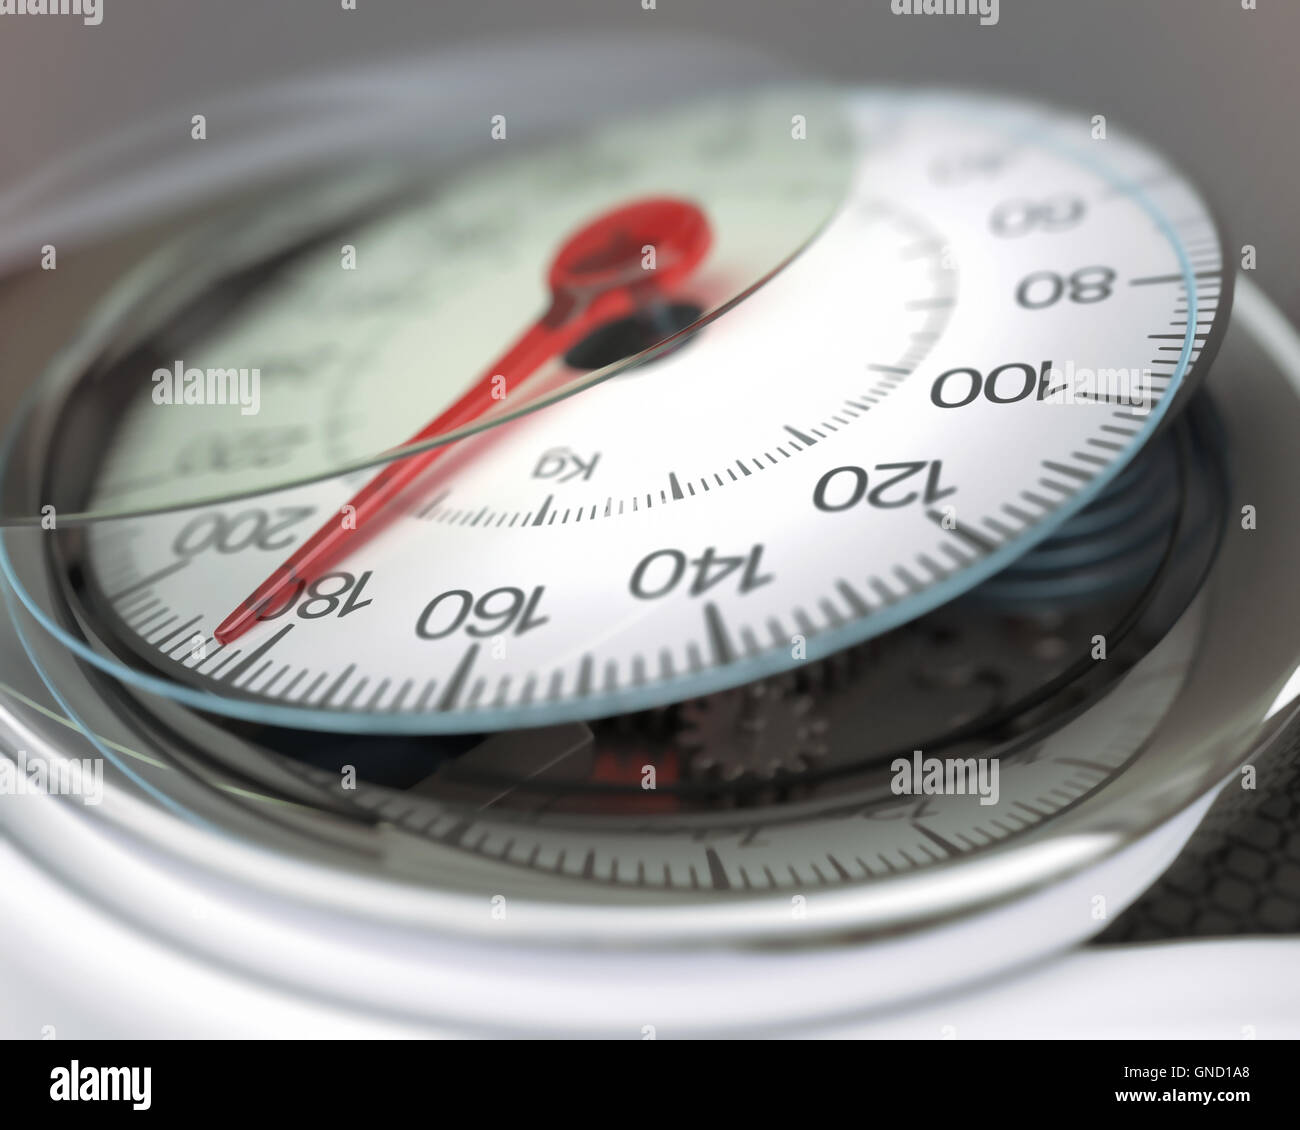 The balance display, broken with excess weight. - Stock Image